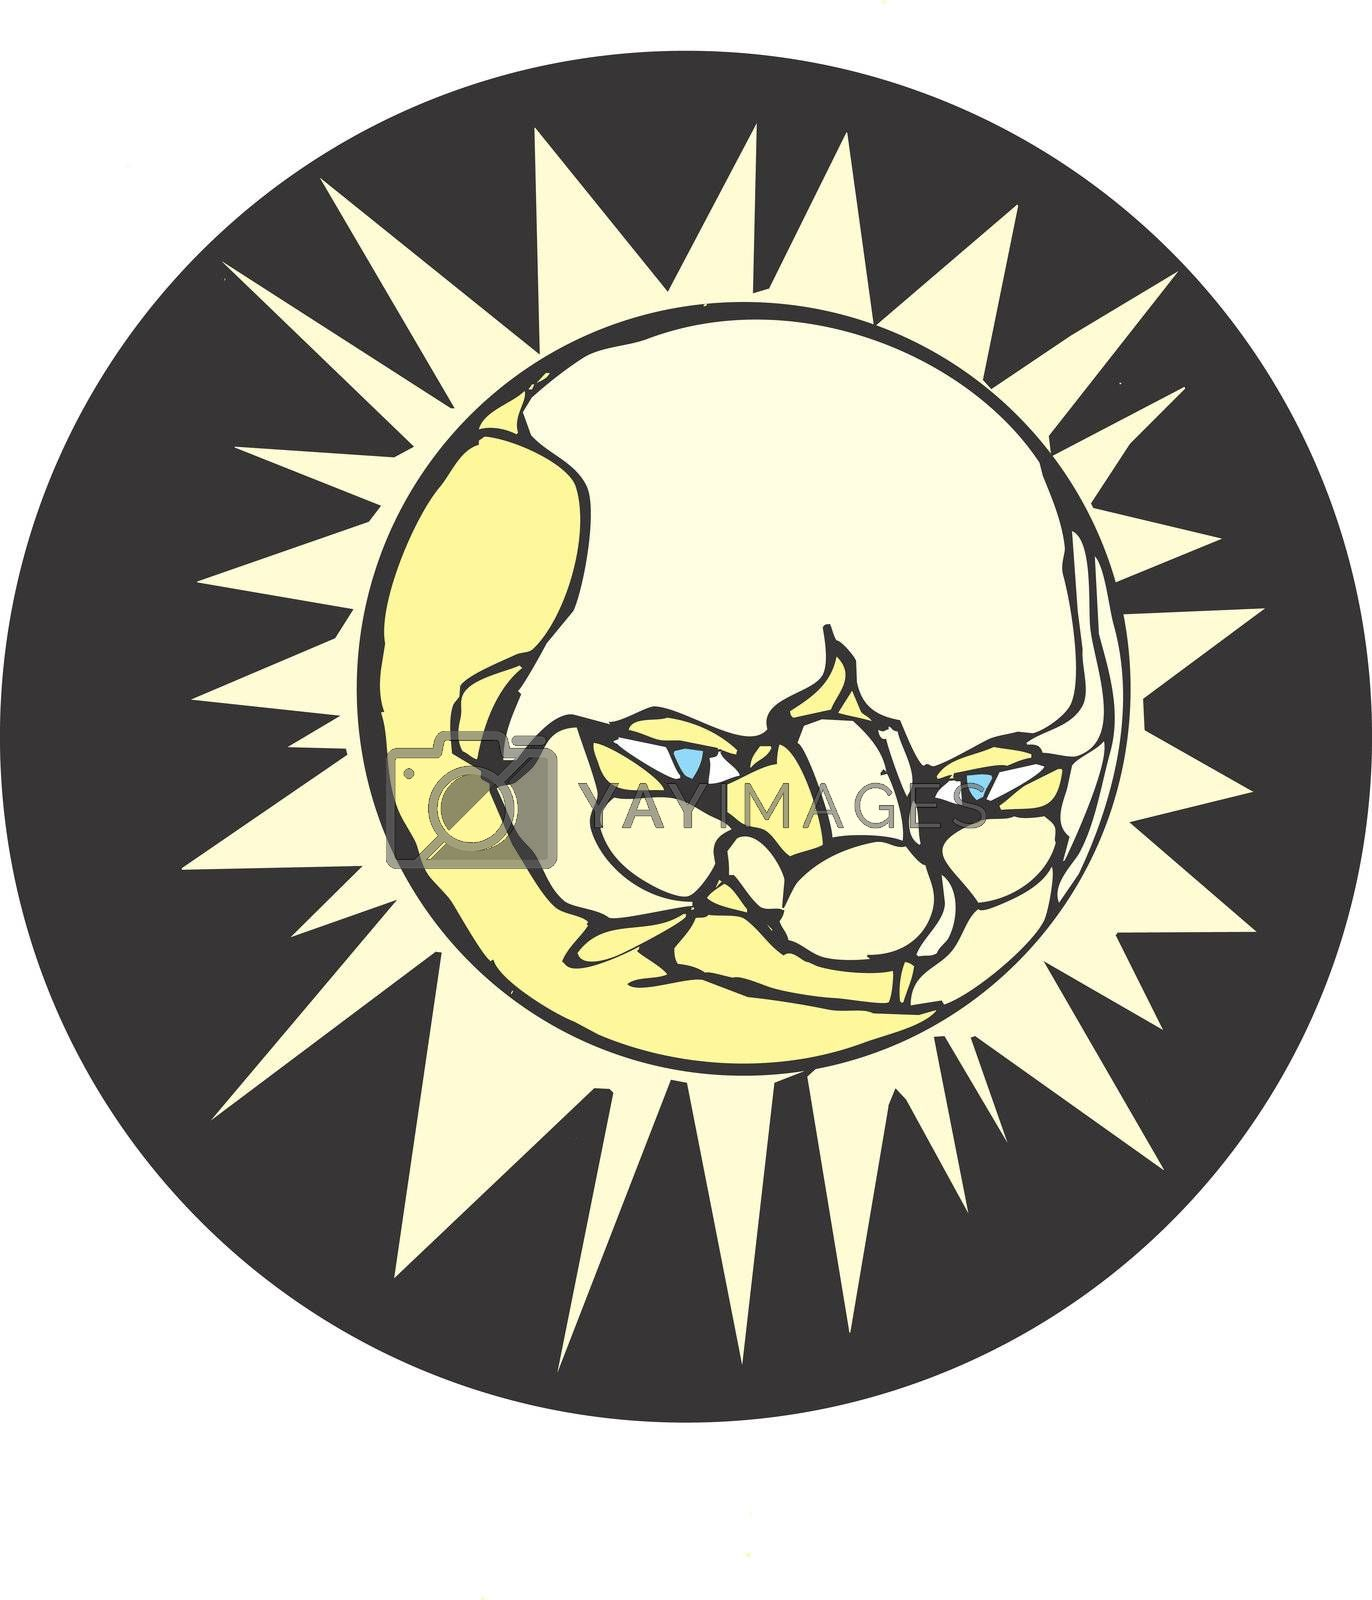 Face of the sun rendered in woodcut with vector elements.